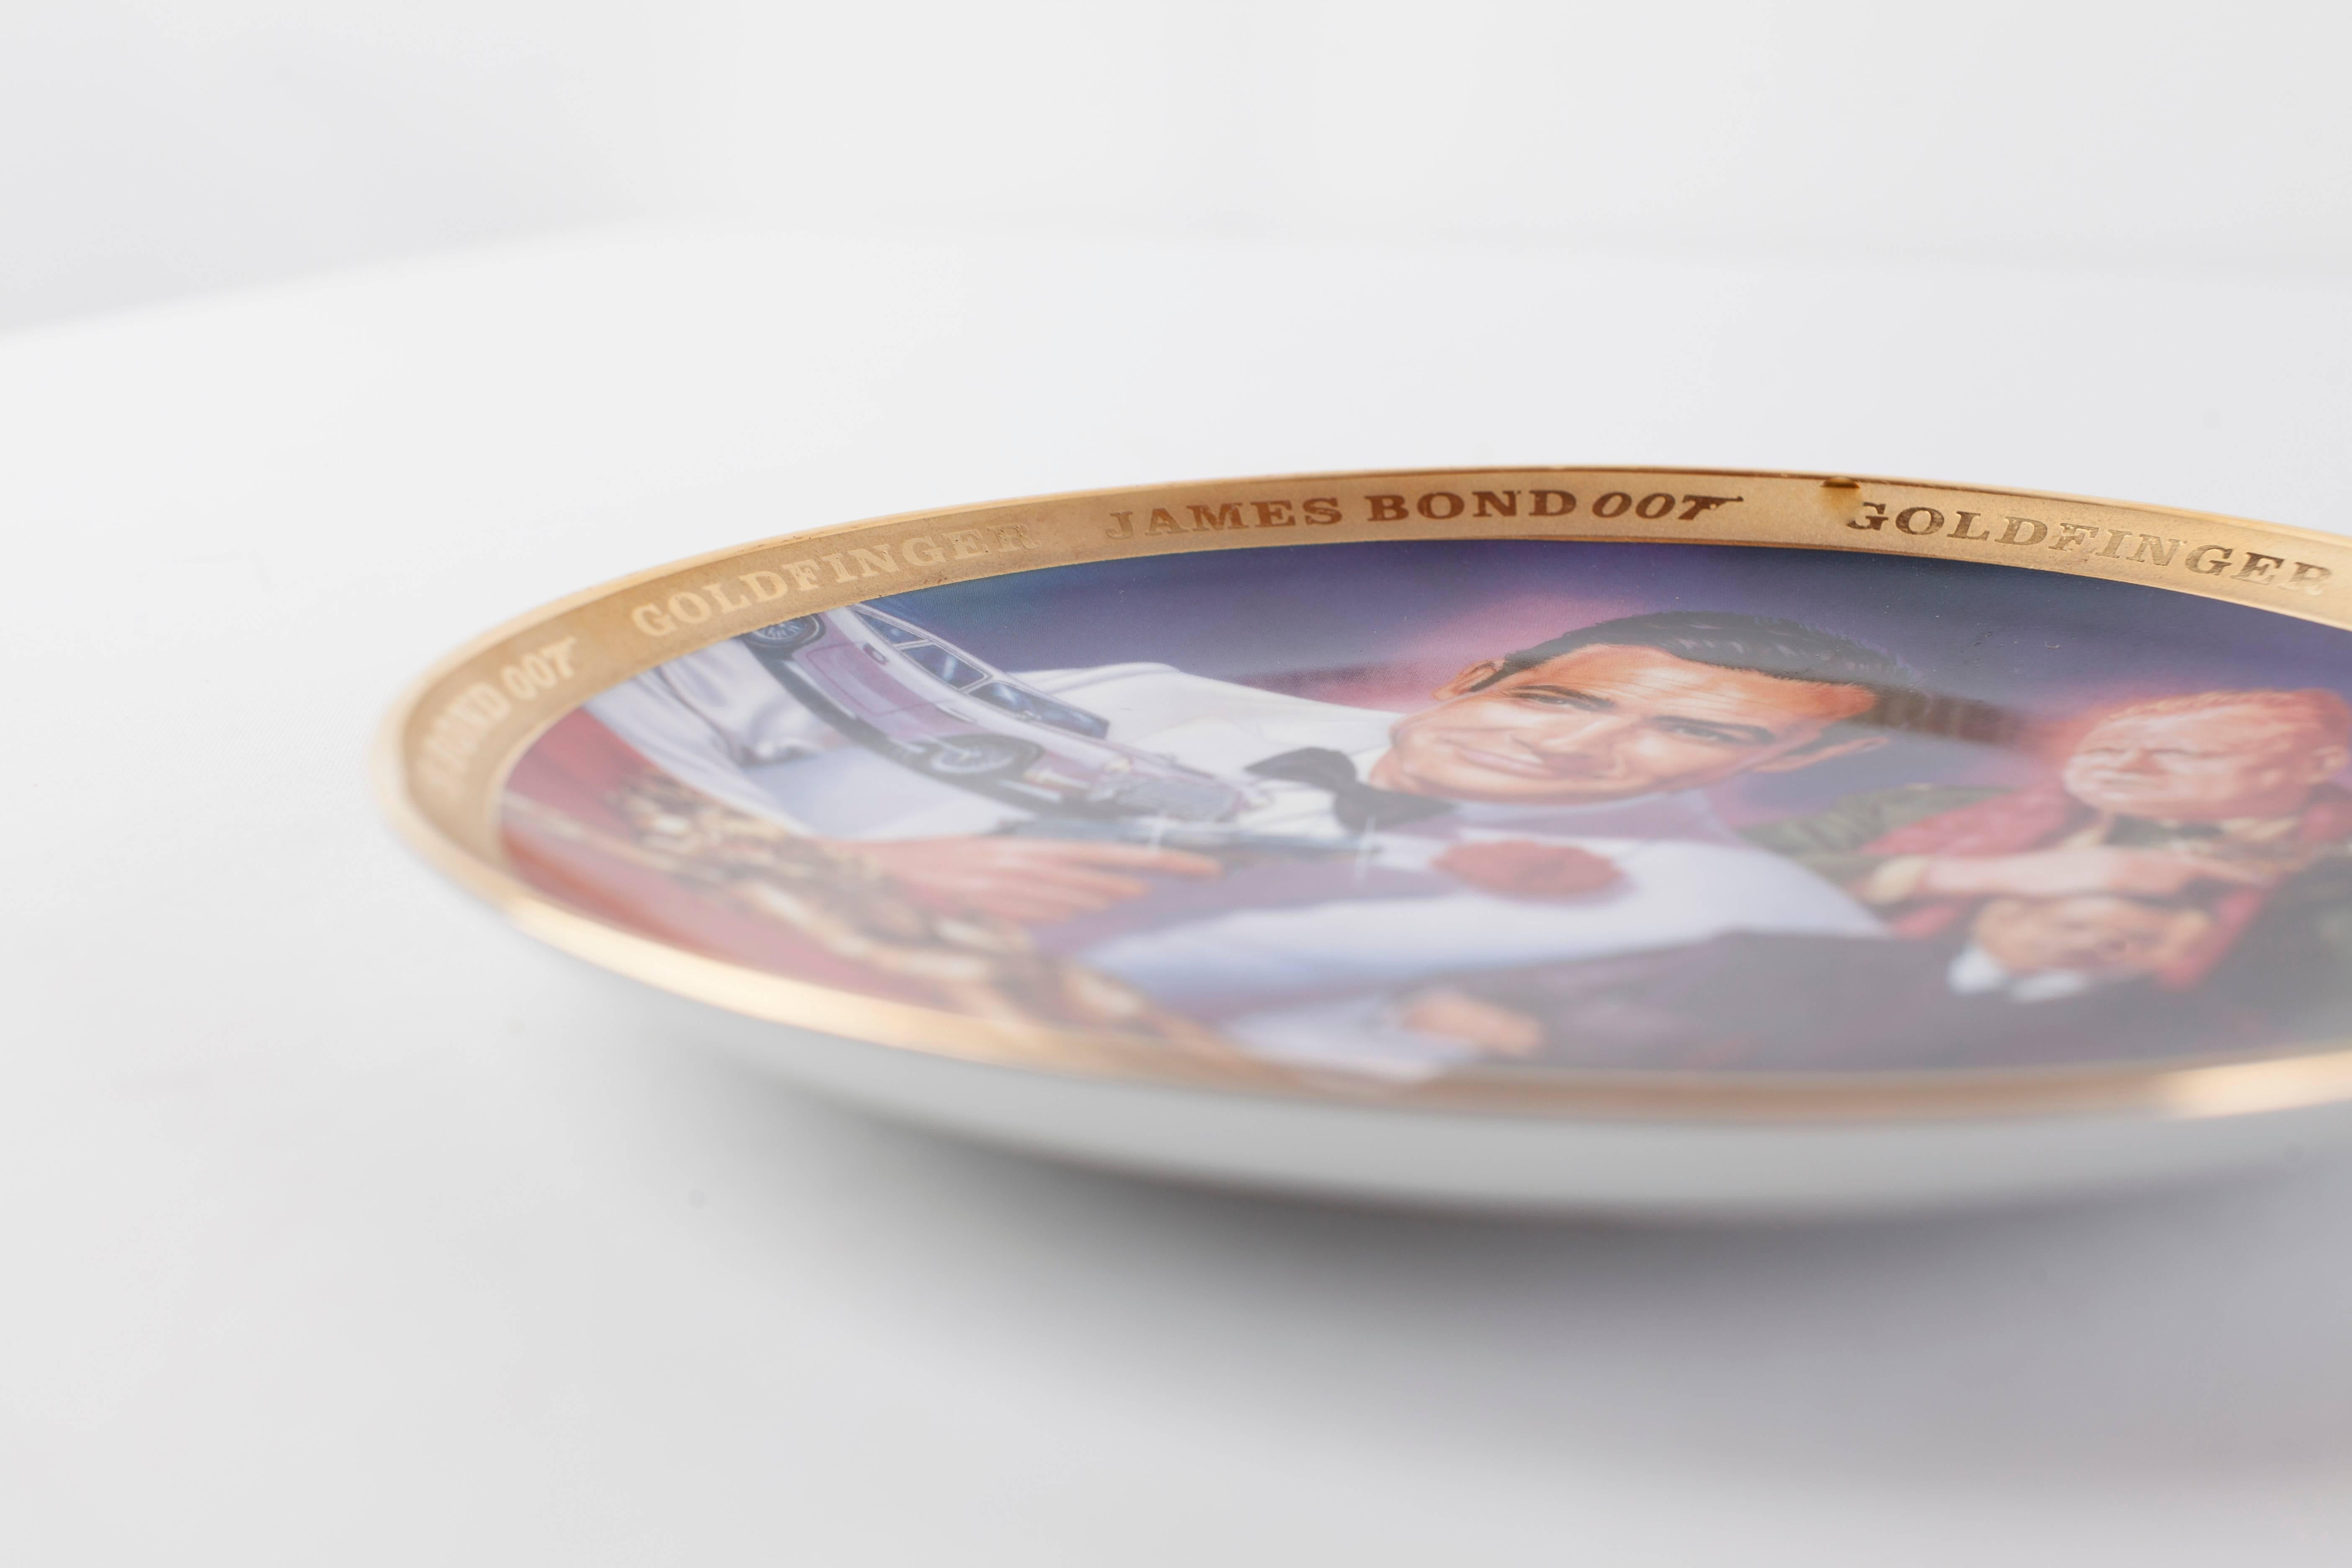 Franklin Mint Limited Edition Set of Six James Bond Plates by Dick Bobnick at 1stdibs & Franklin Mint Limited Edition Set of Six James Bond Plates by Dick ...